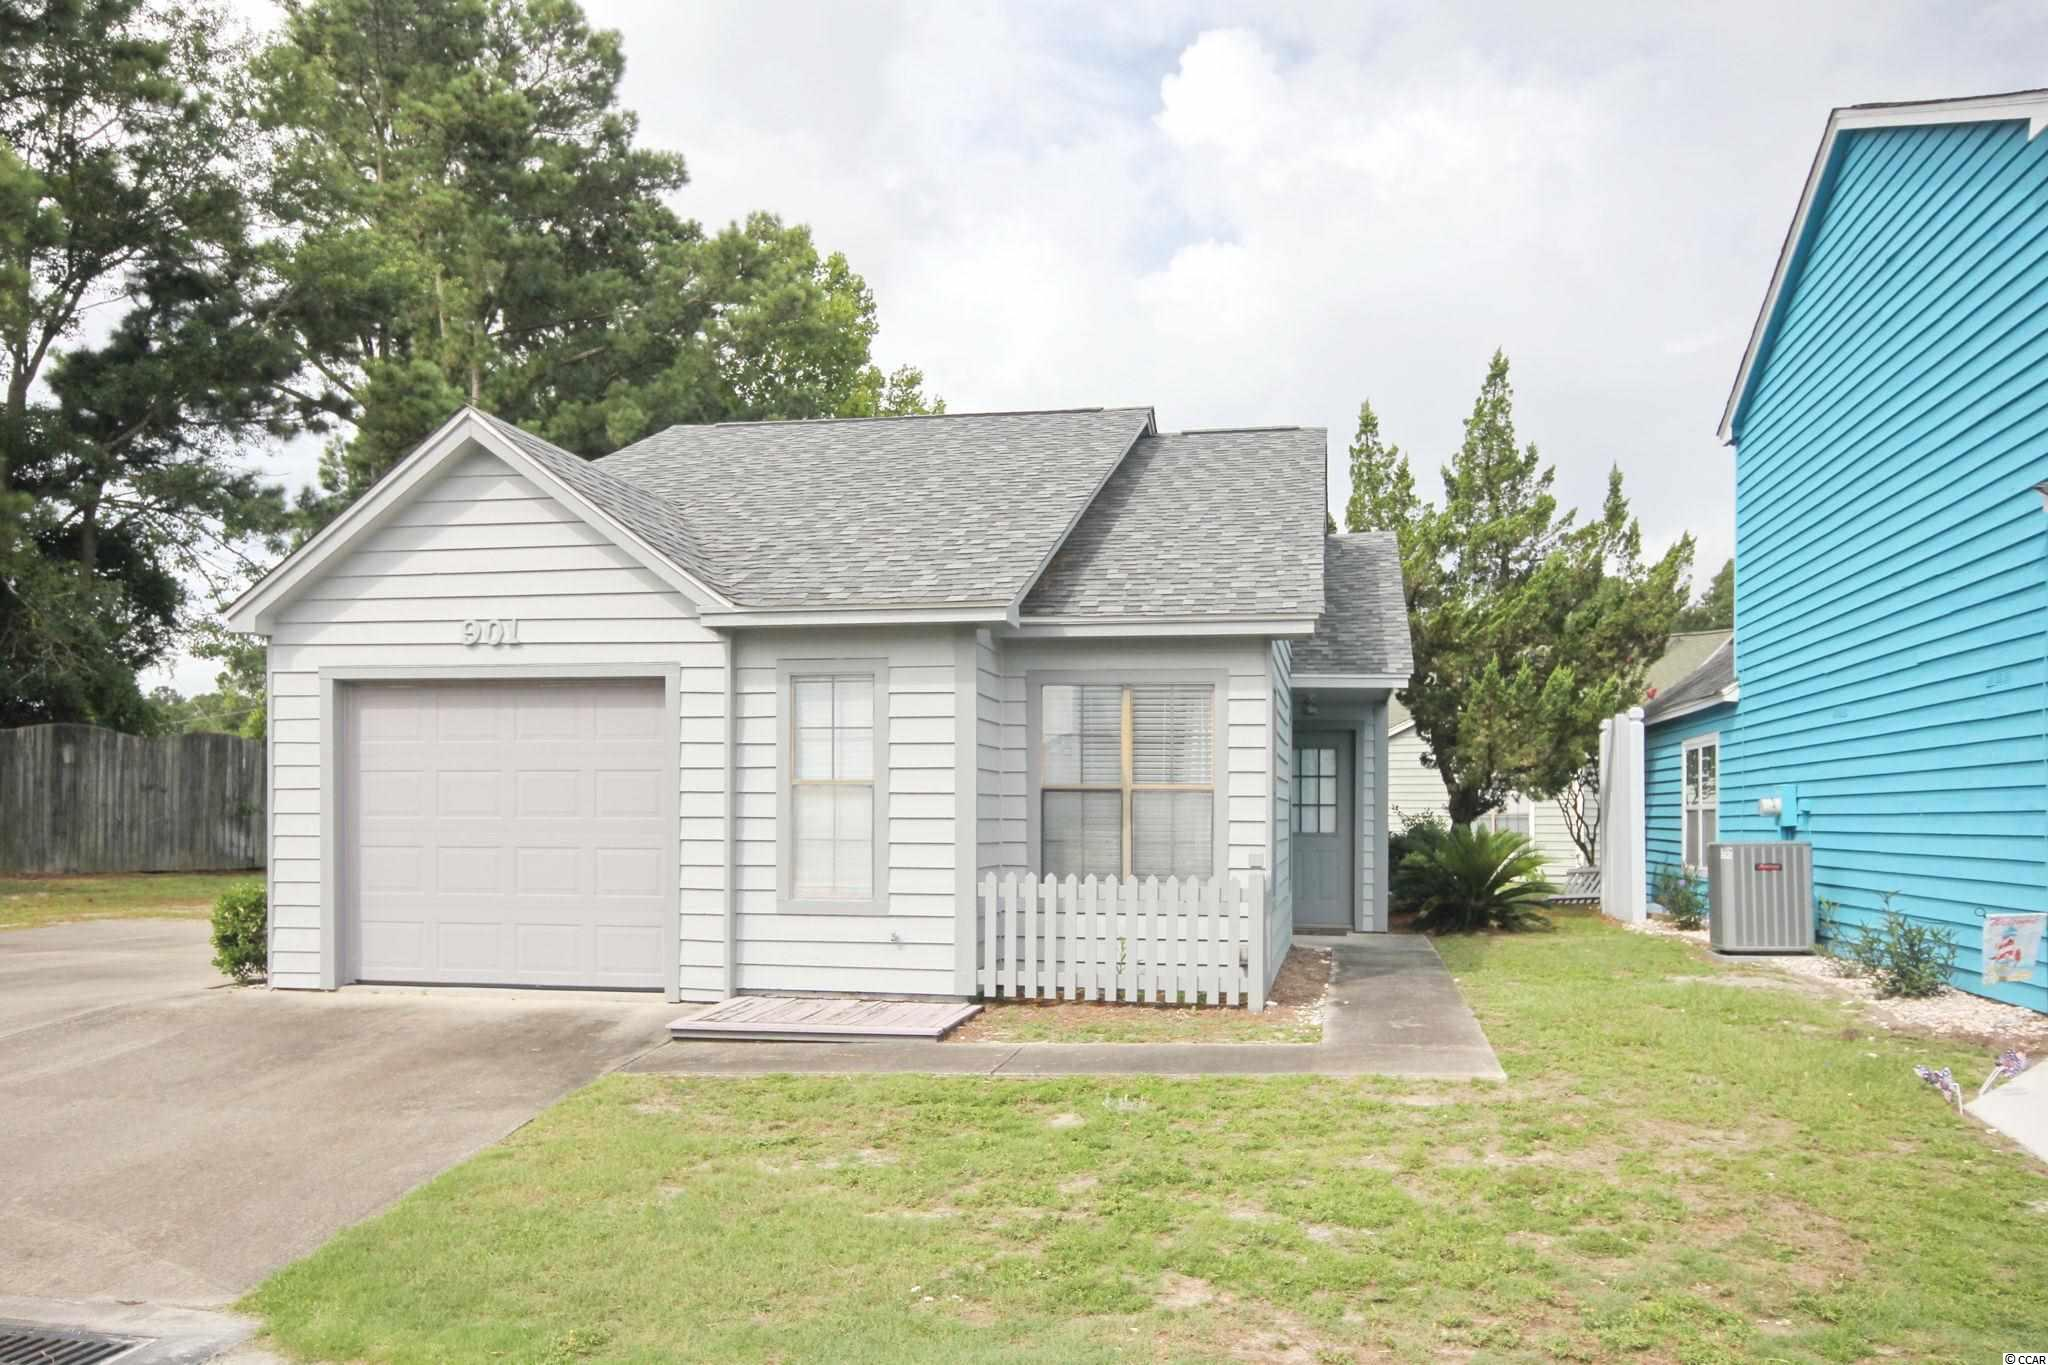 """Charming updated cottage on large lot at end of cul-se-sac just two minutes and a golf cart ride to the beach.  2 BR/2 BA with flex room which offers lots of possibilities as an office, playroom, craft room, etc...  Located in Lake Homes @ Belle Park.  Welcoming floor plan with tall ceilings, flex room built-ins, laminate floors in bedrooms, and living room fireplace with electric heater insert.  Improvements include smooth ceilings, wood look tiled floors in the kitchen; kitchen cabinets with under and inside cabinet lighting; natural stone quartzite countertops; glass tile backsplash; stainless steel kitchen appliances; newer bathroom vanities and toilets; and designer lighting, ceiling fans, and newer light switches.  The sliding door and side entry door were replaced in 2016 as was the roof. The HVAC was replaced is 2018.  Spacious yard with private rear patio.  One car garage with shelving,  pull down stairs for attic storage and washer/dryer. Low HOA includes pool, trash pick up, landscaping, common areas and common electric.  Seller has seldom occupied the property and it is being sold """"AS IS.""""  Highly desirable location close to restaurants, shopping, entertainment, golf, boating, the ATLANTIC OCEAN, and more!  Measurements are approximate and not guaranteed.  Buyer is responsible for verification."""